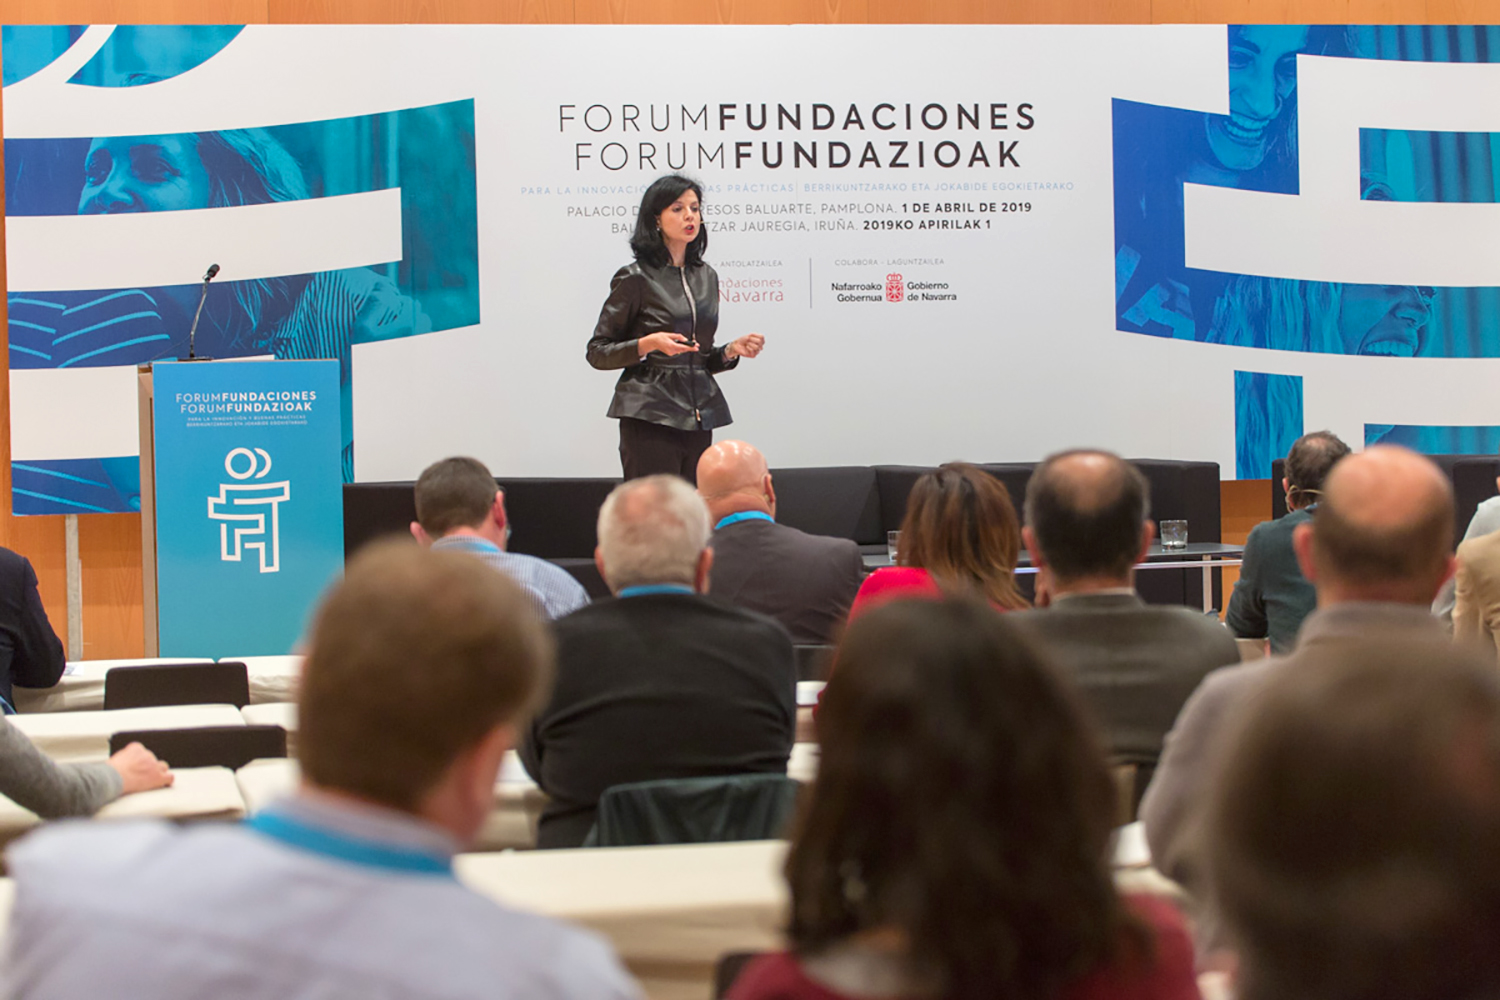 Forum Foundation